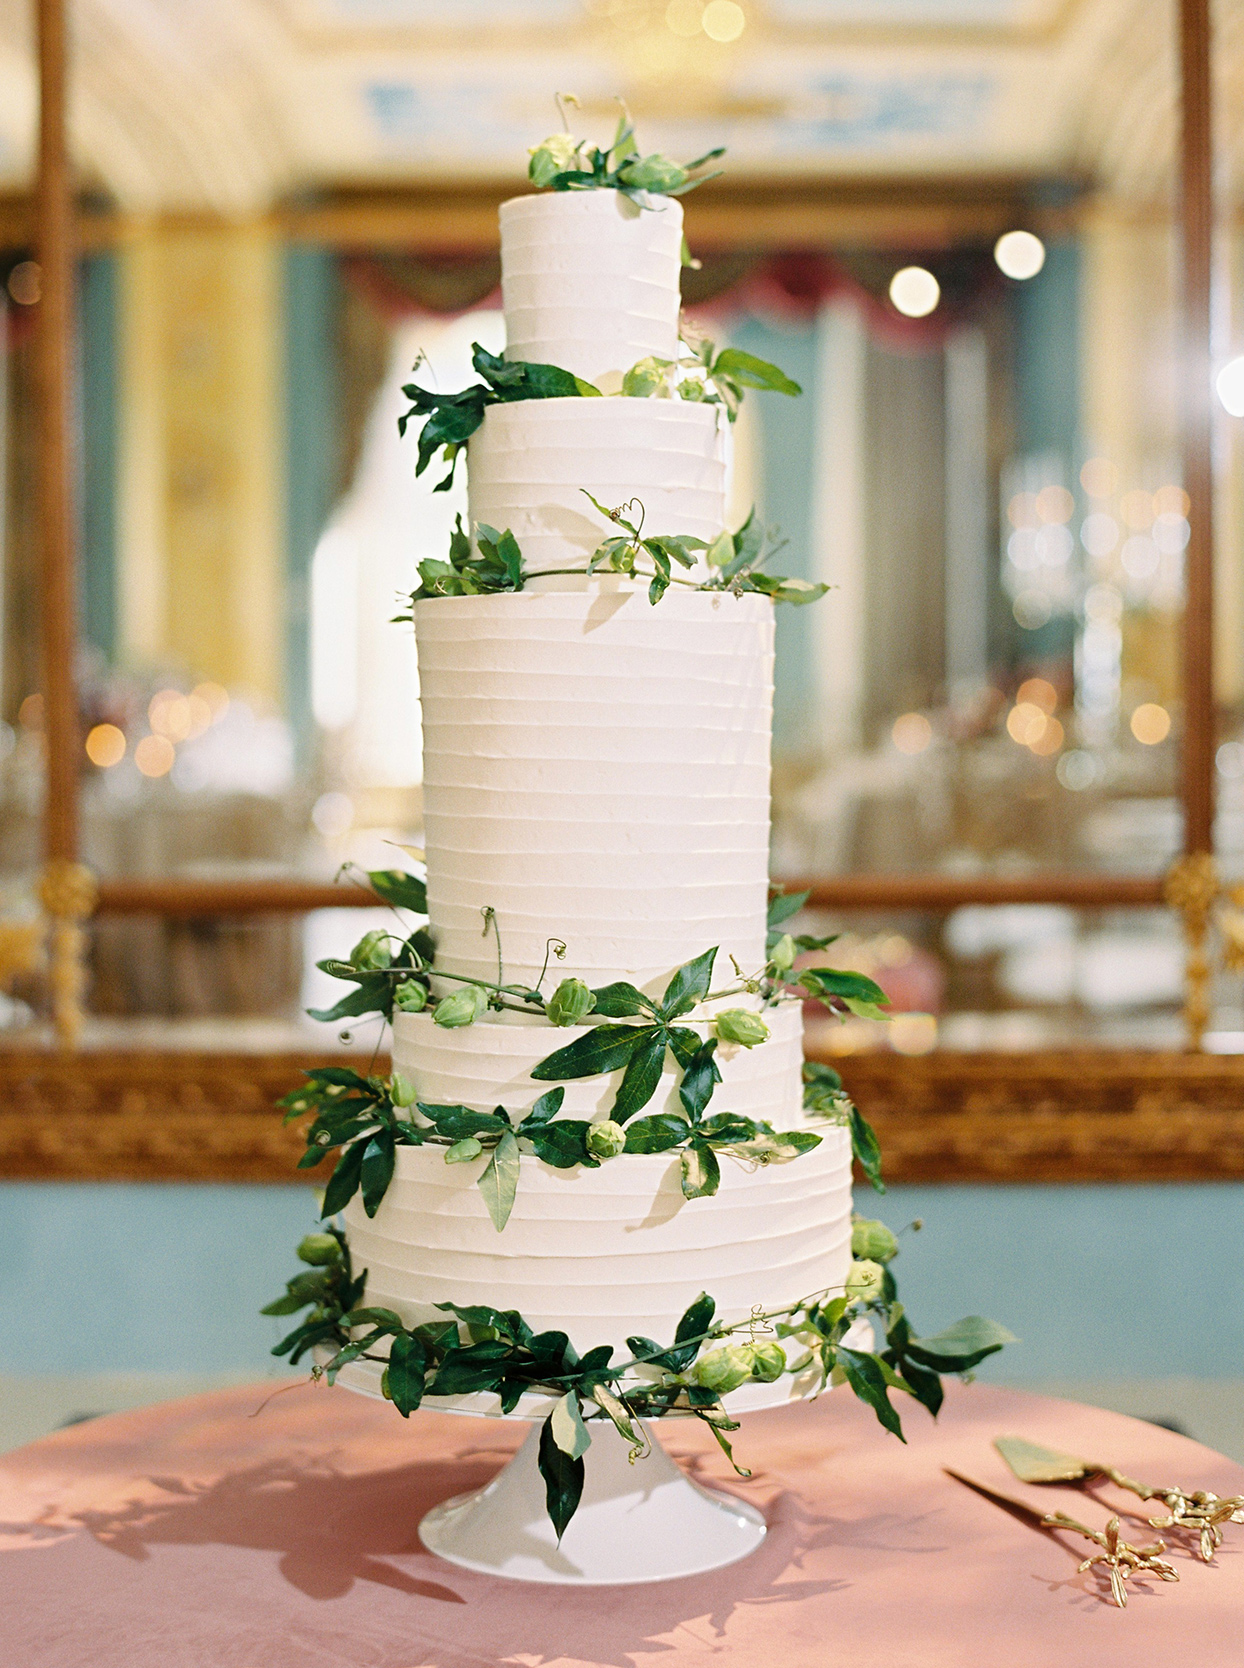 katie nicholas wedding cake with greenery